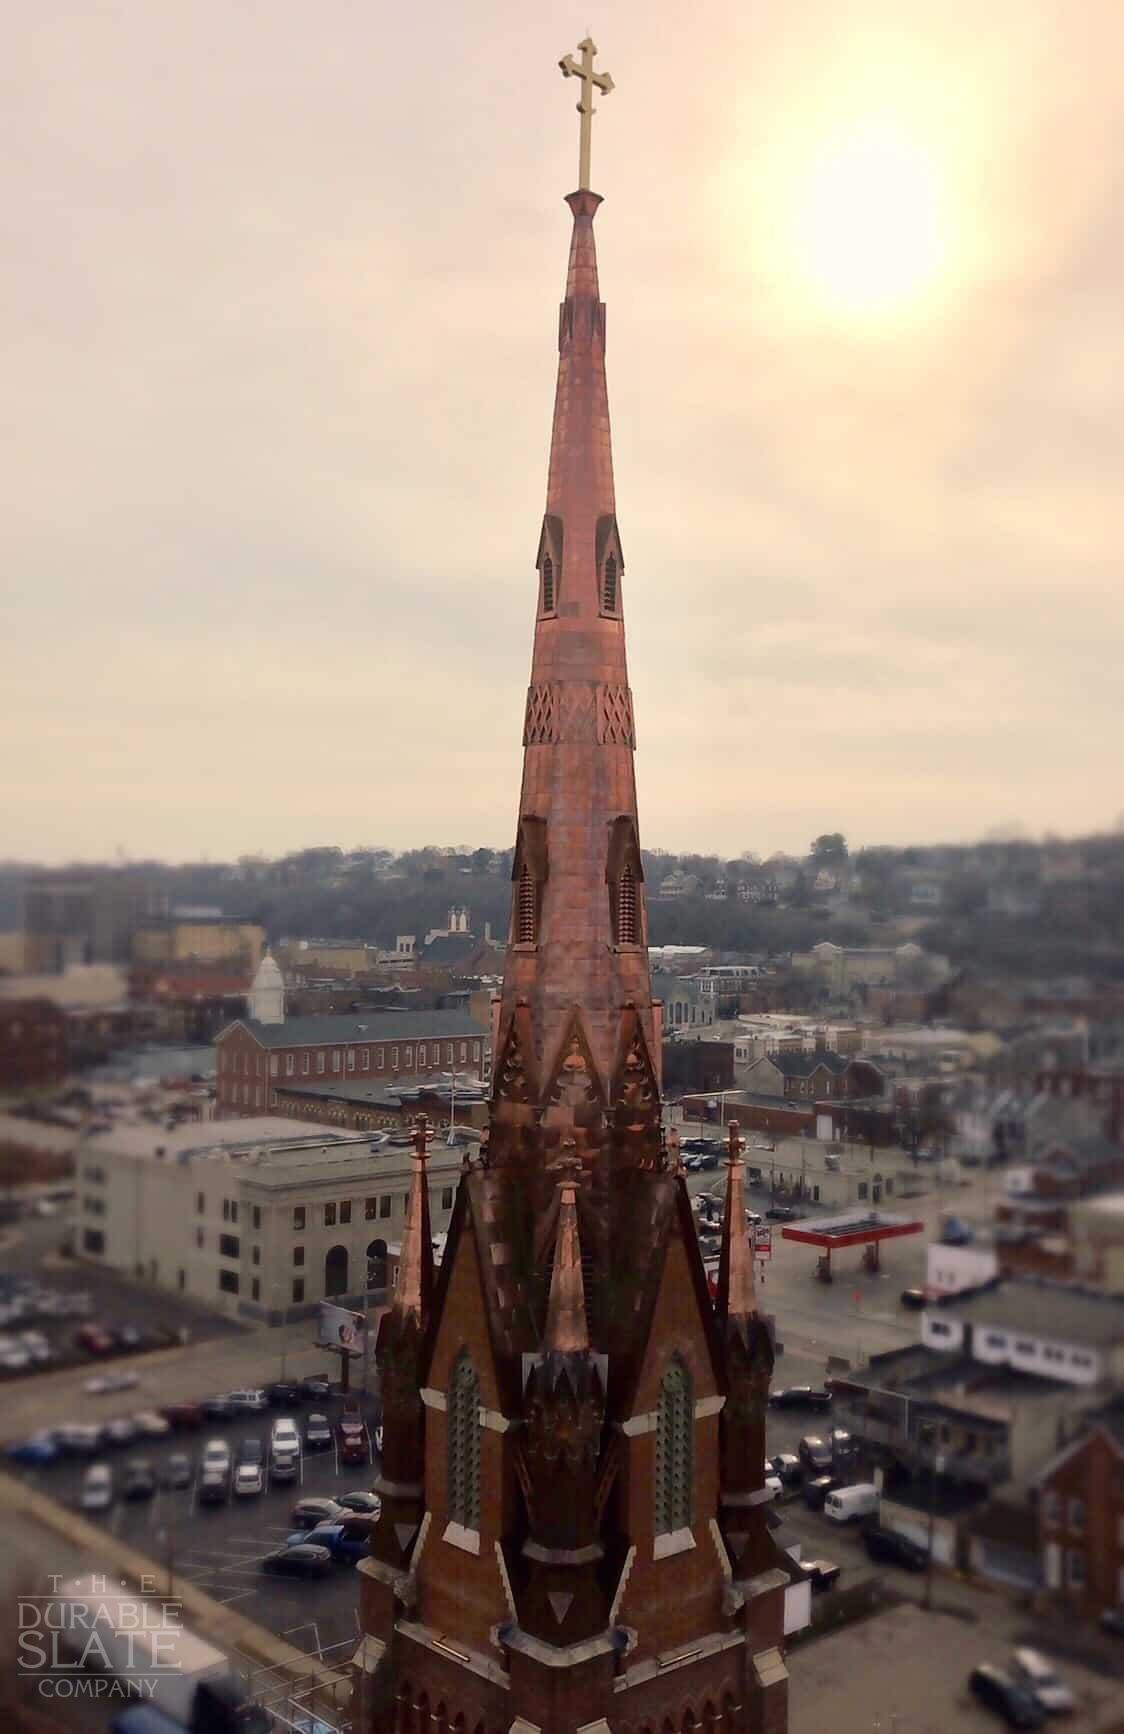 Steeple Square, Dubuque, IA drone footage with sun in the background